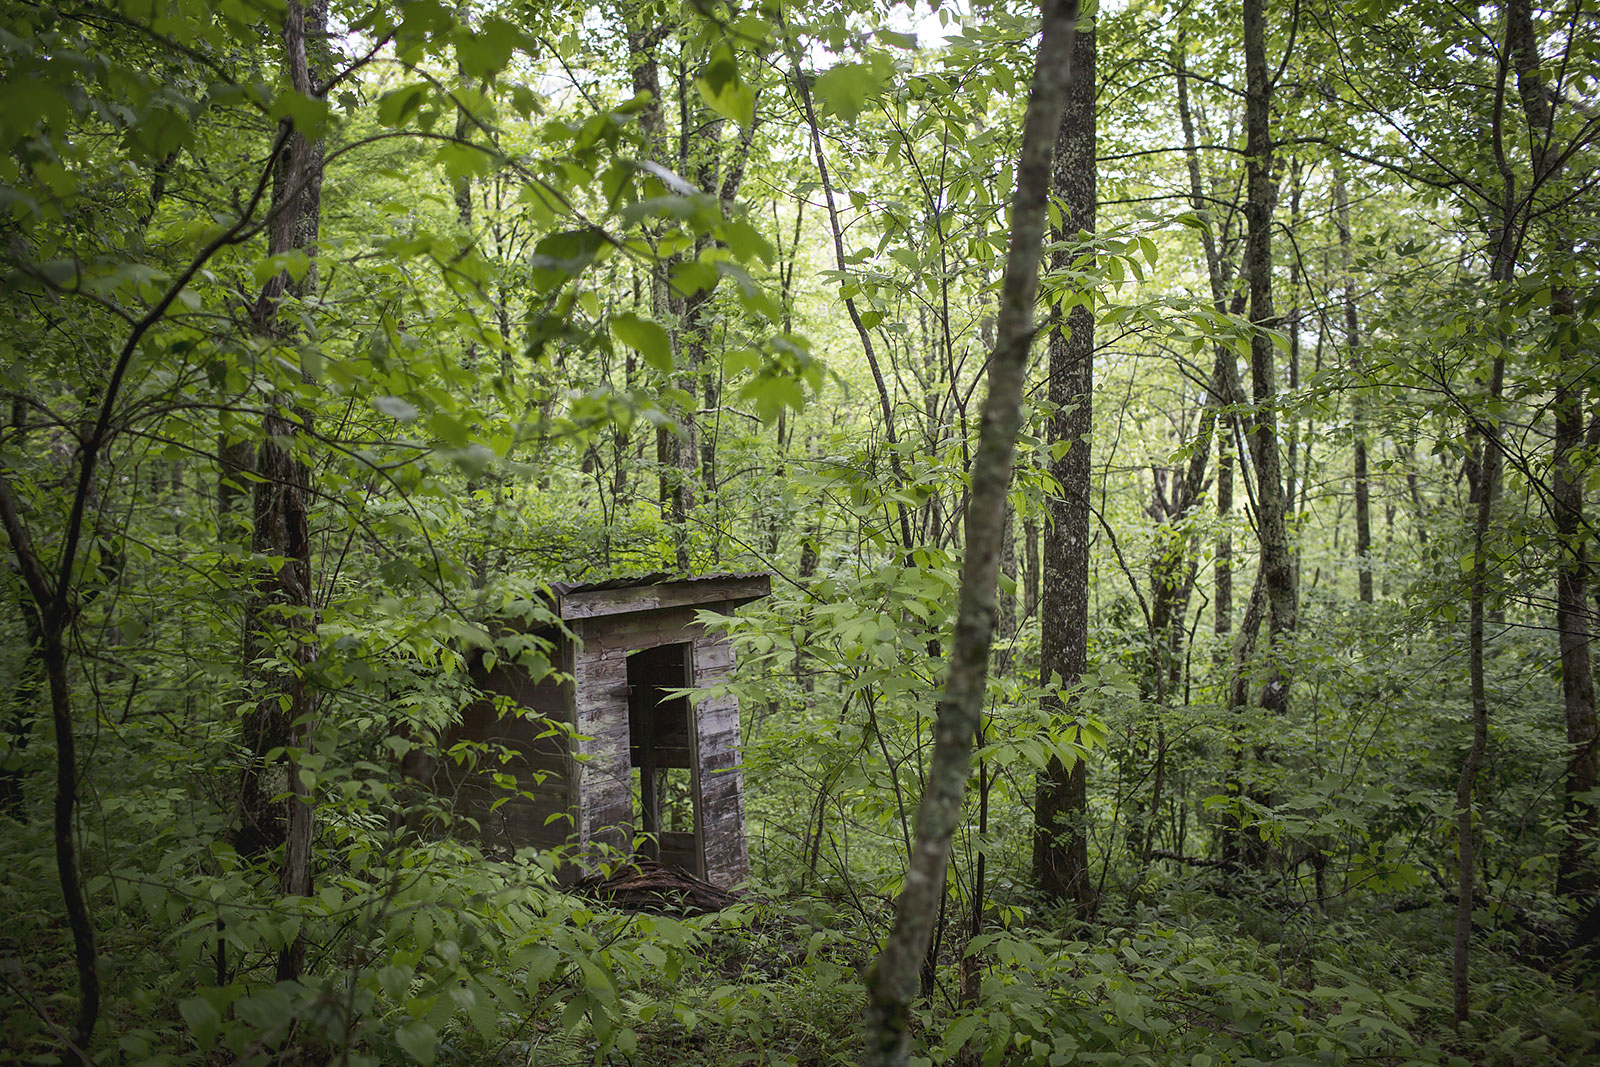 The outhouse for the historic Wilson Lick cabin, the first ranger station in the Nantahala National Forest.